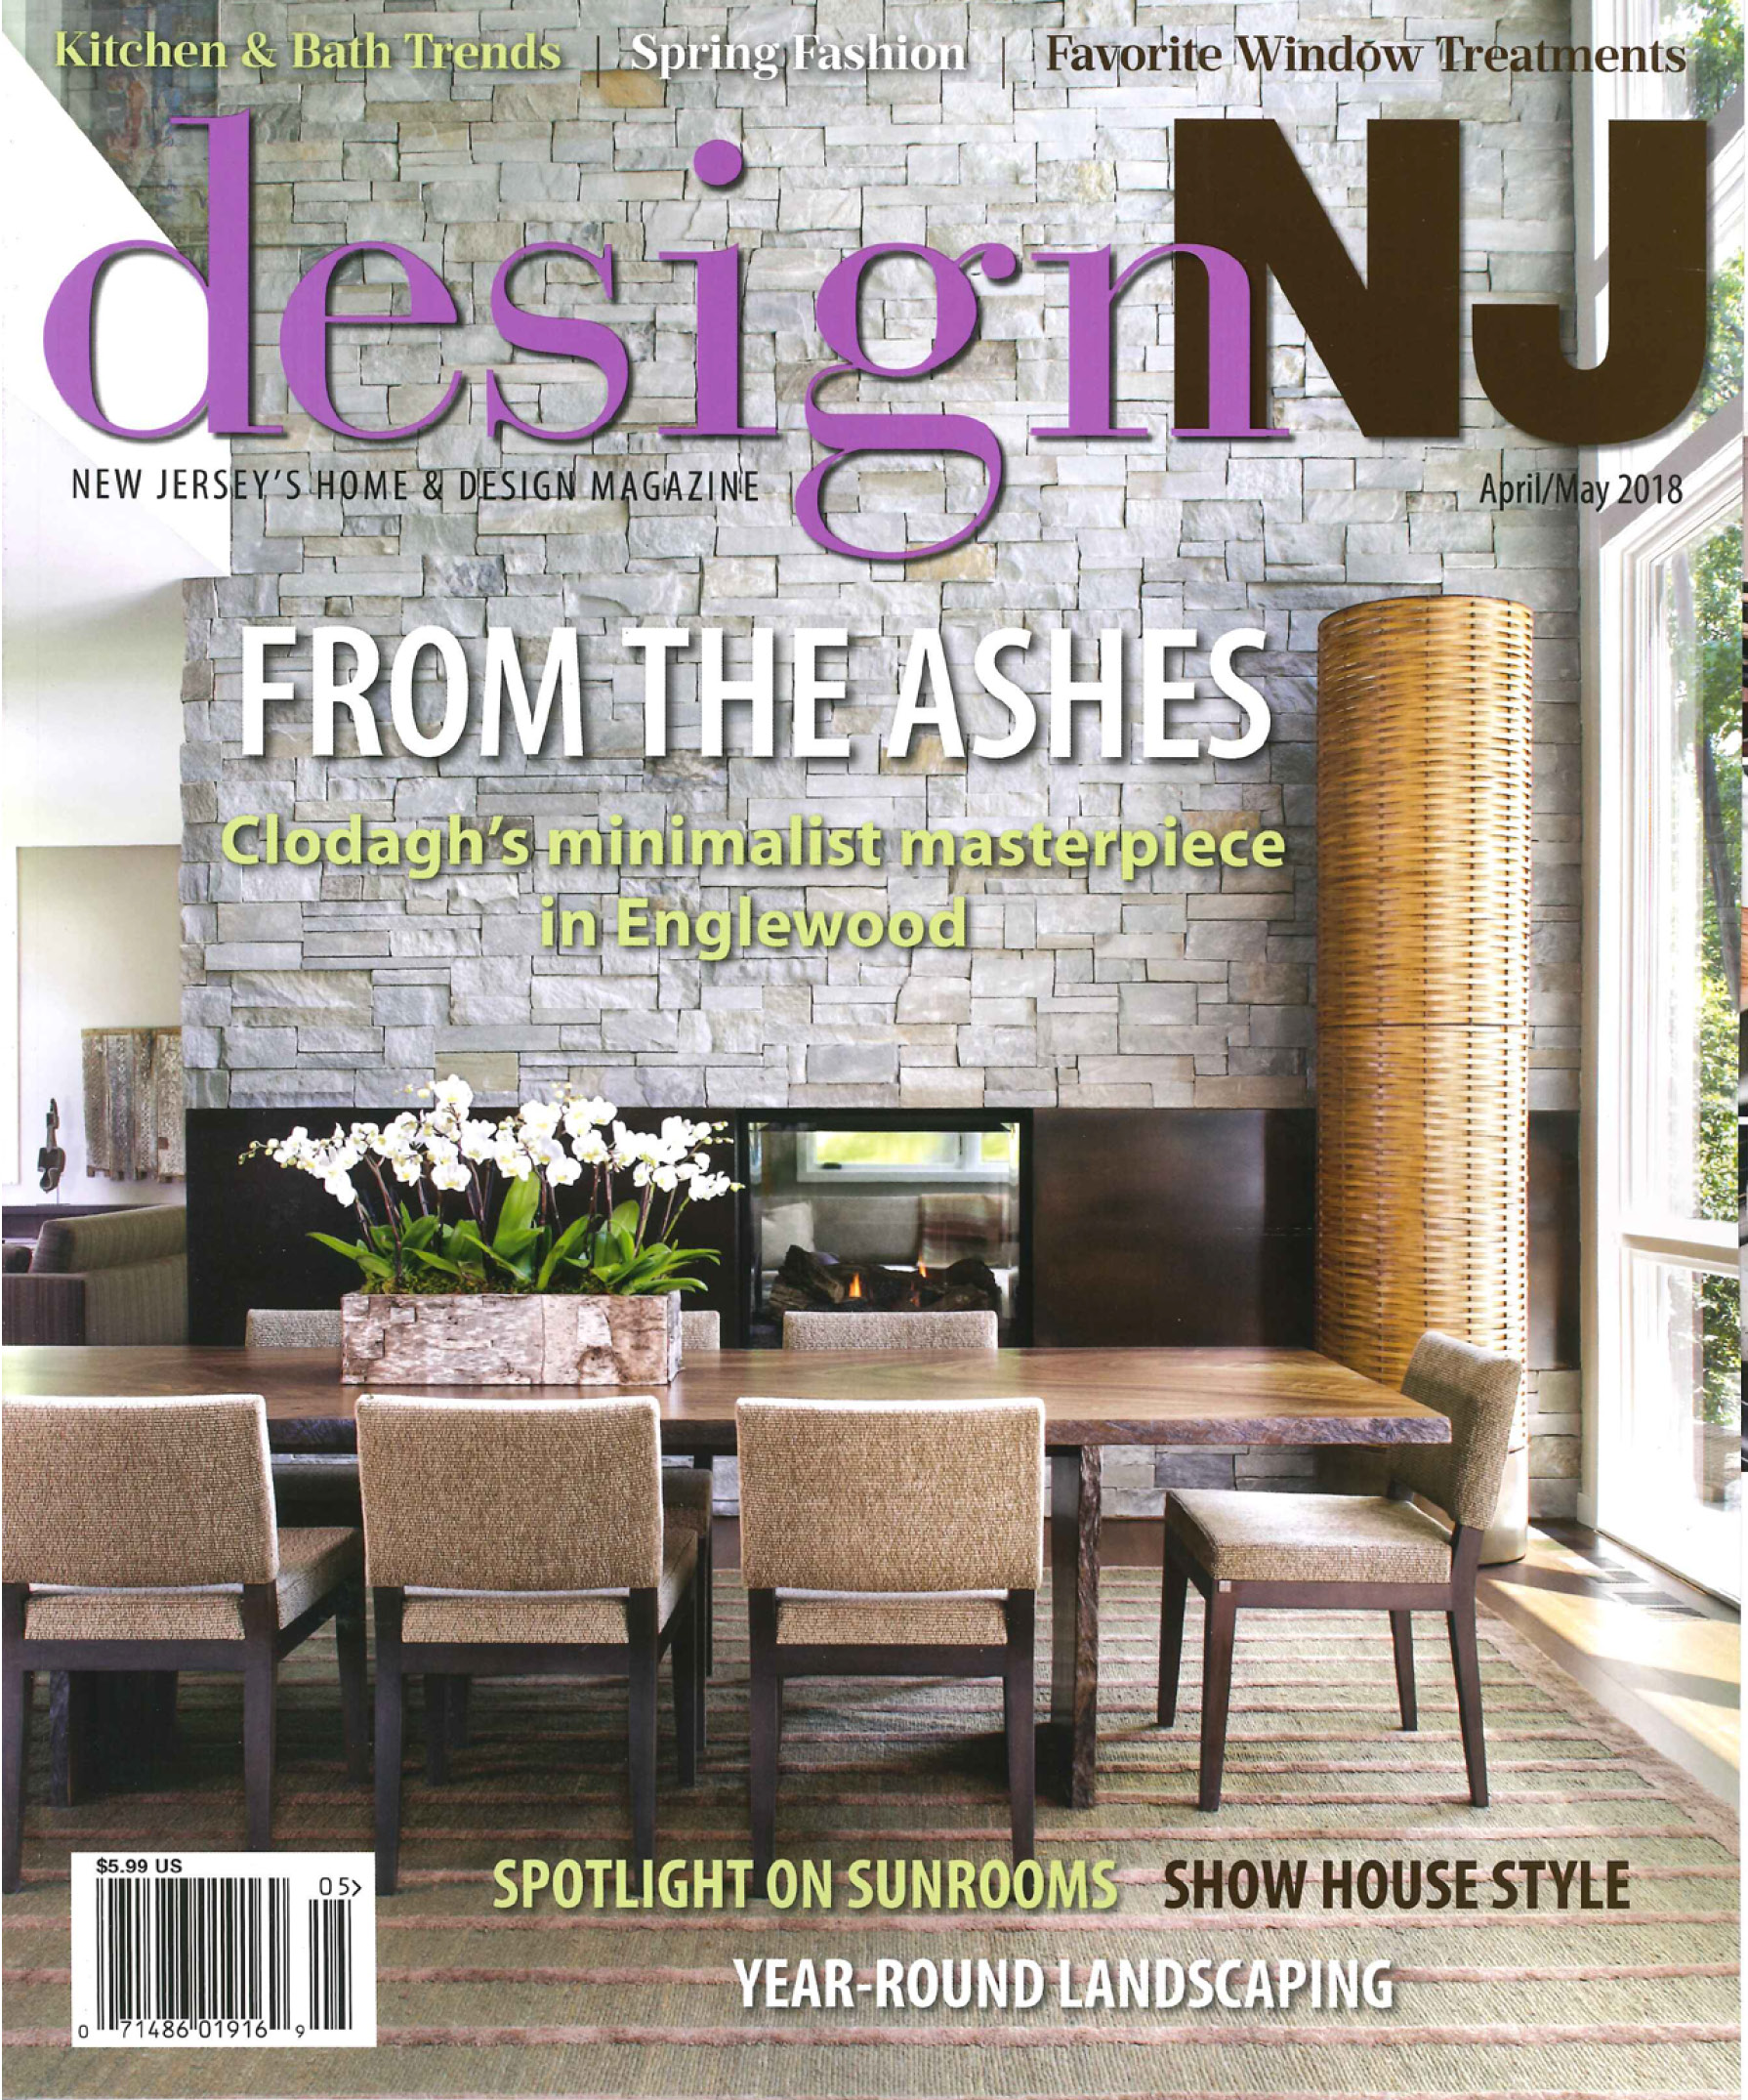 Lovely Design NJ April 2018. Industry Magazine March 2018